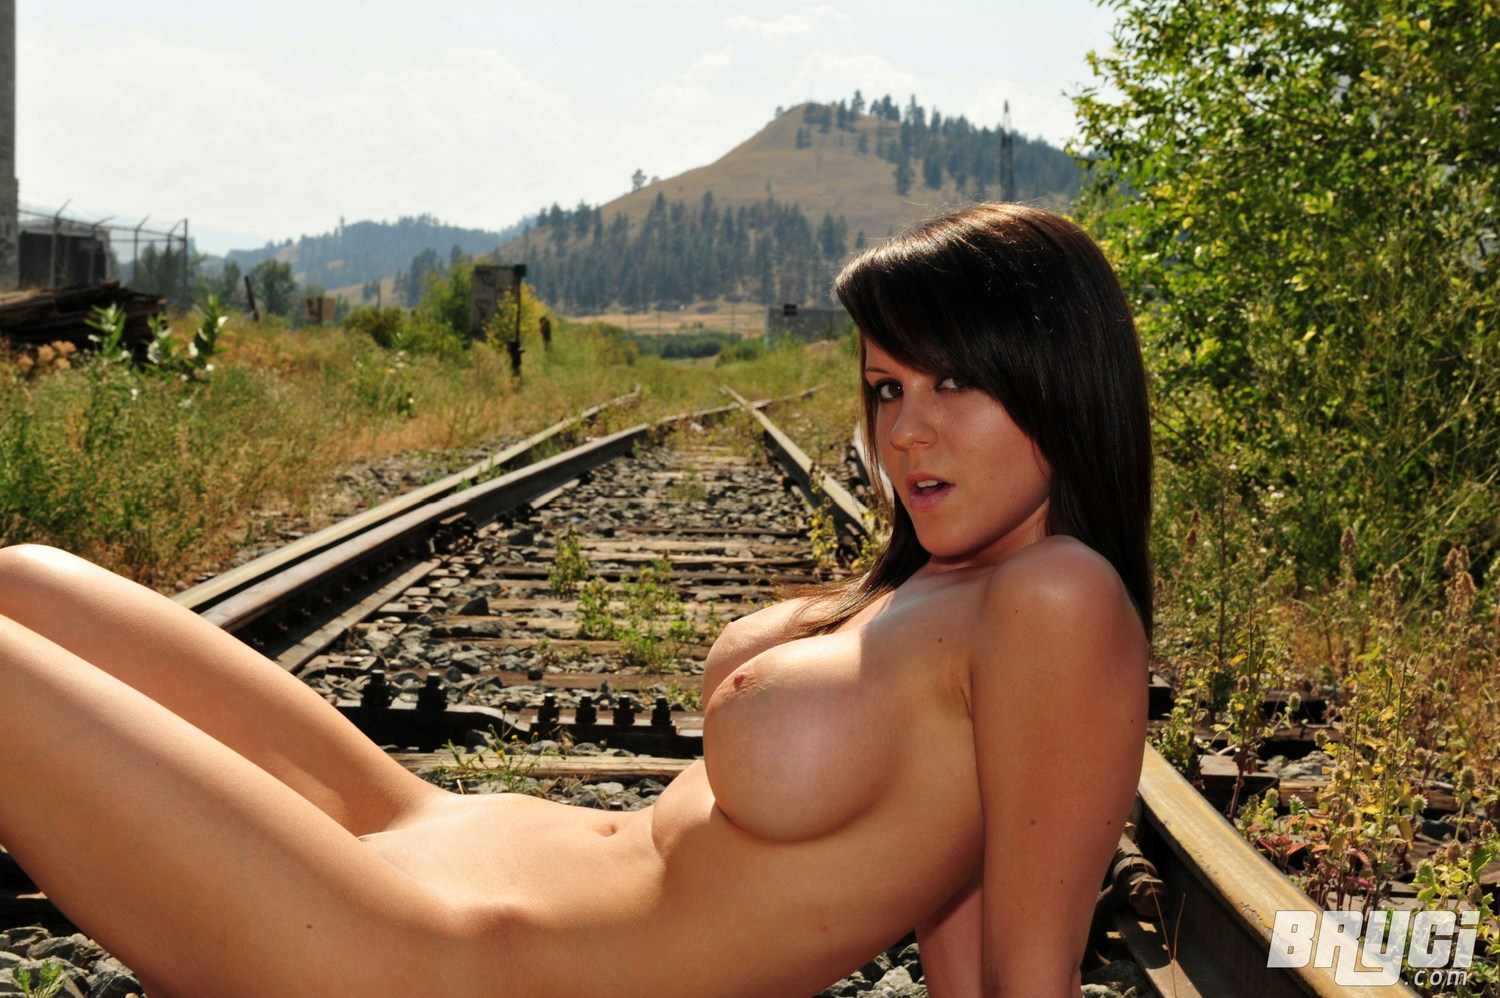 Pretty young women tied on railroad tracks naked state